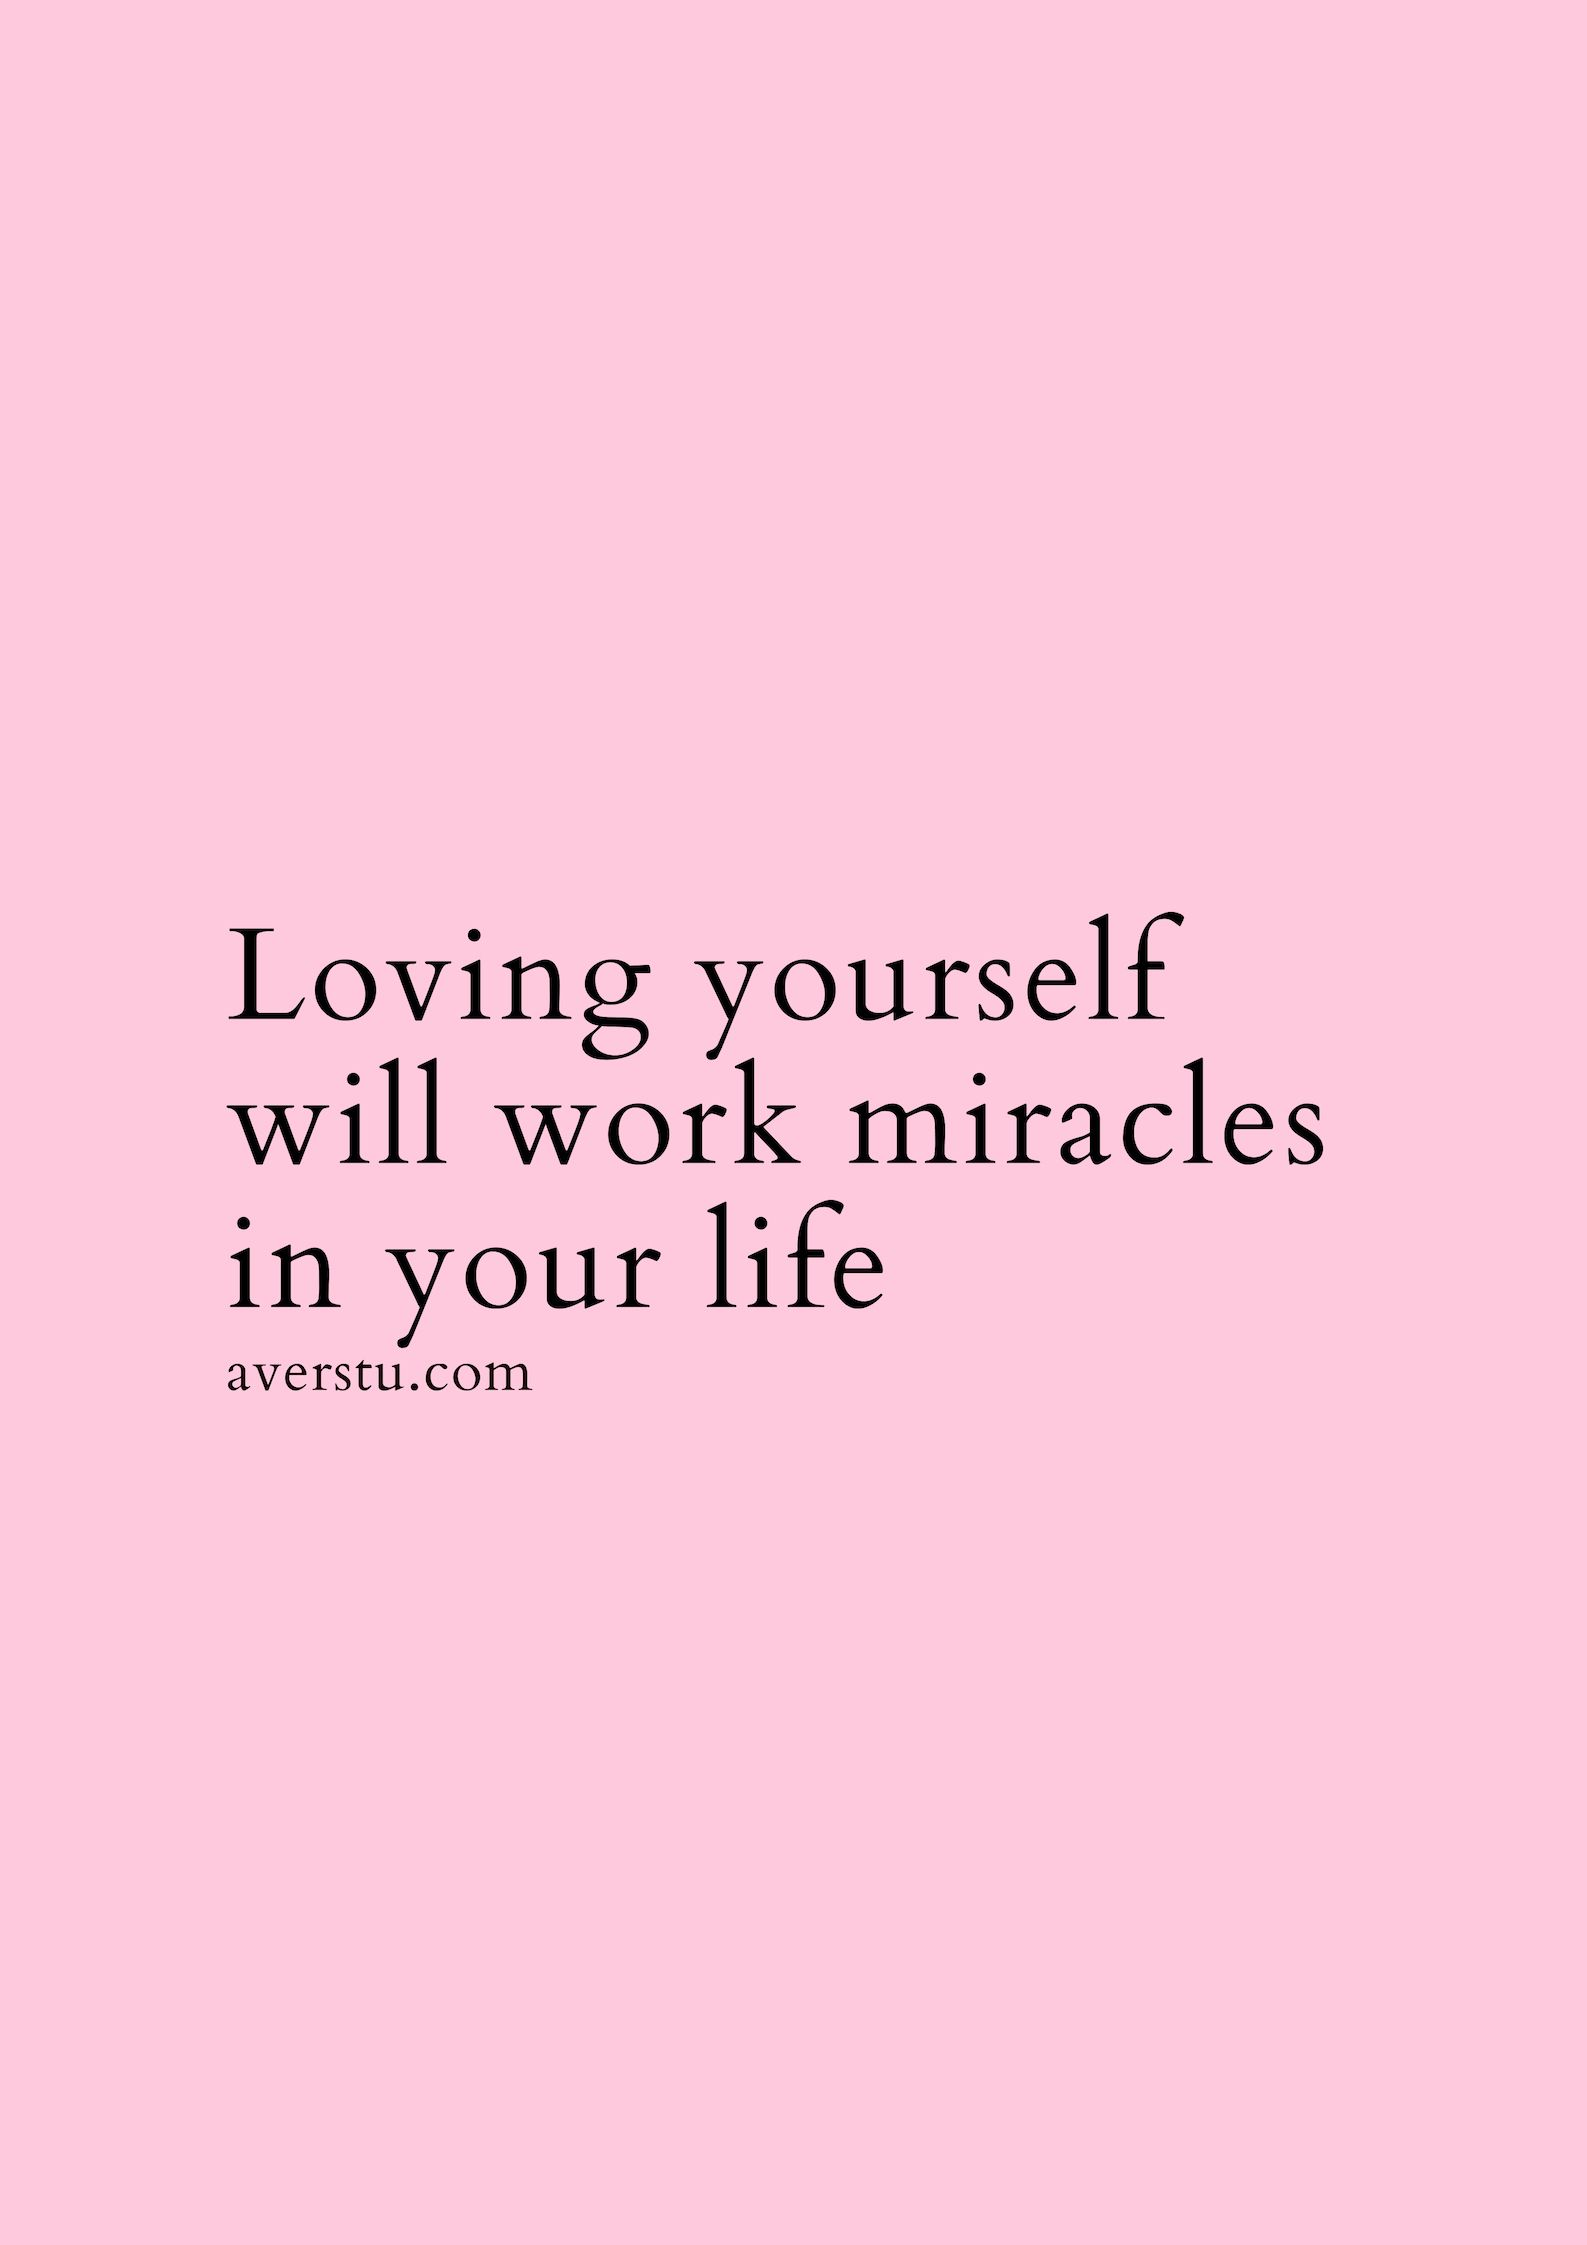 5 Top Self Love Quotes To Always Remember (Part 5) - The